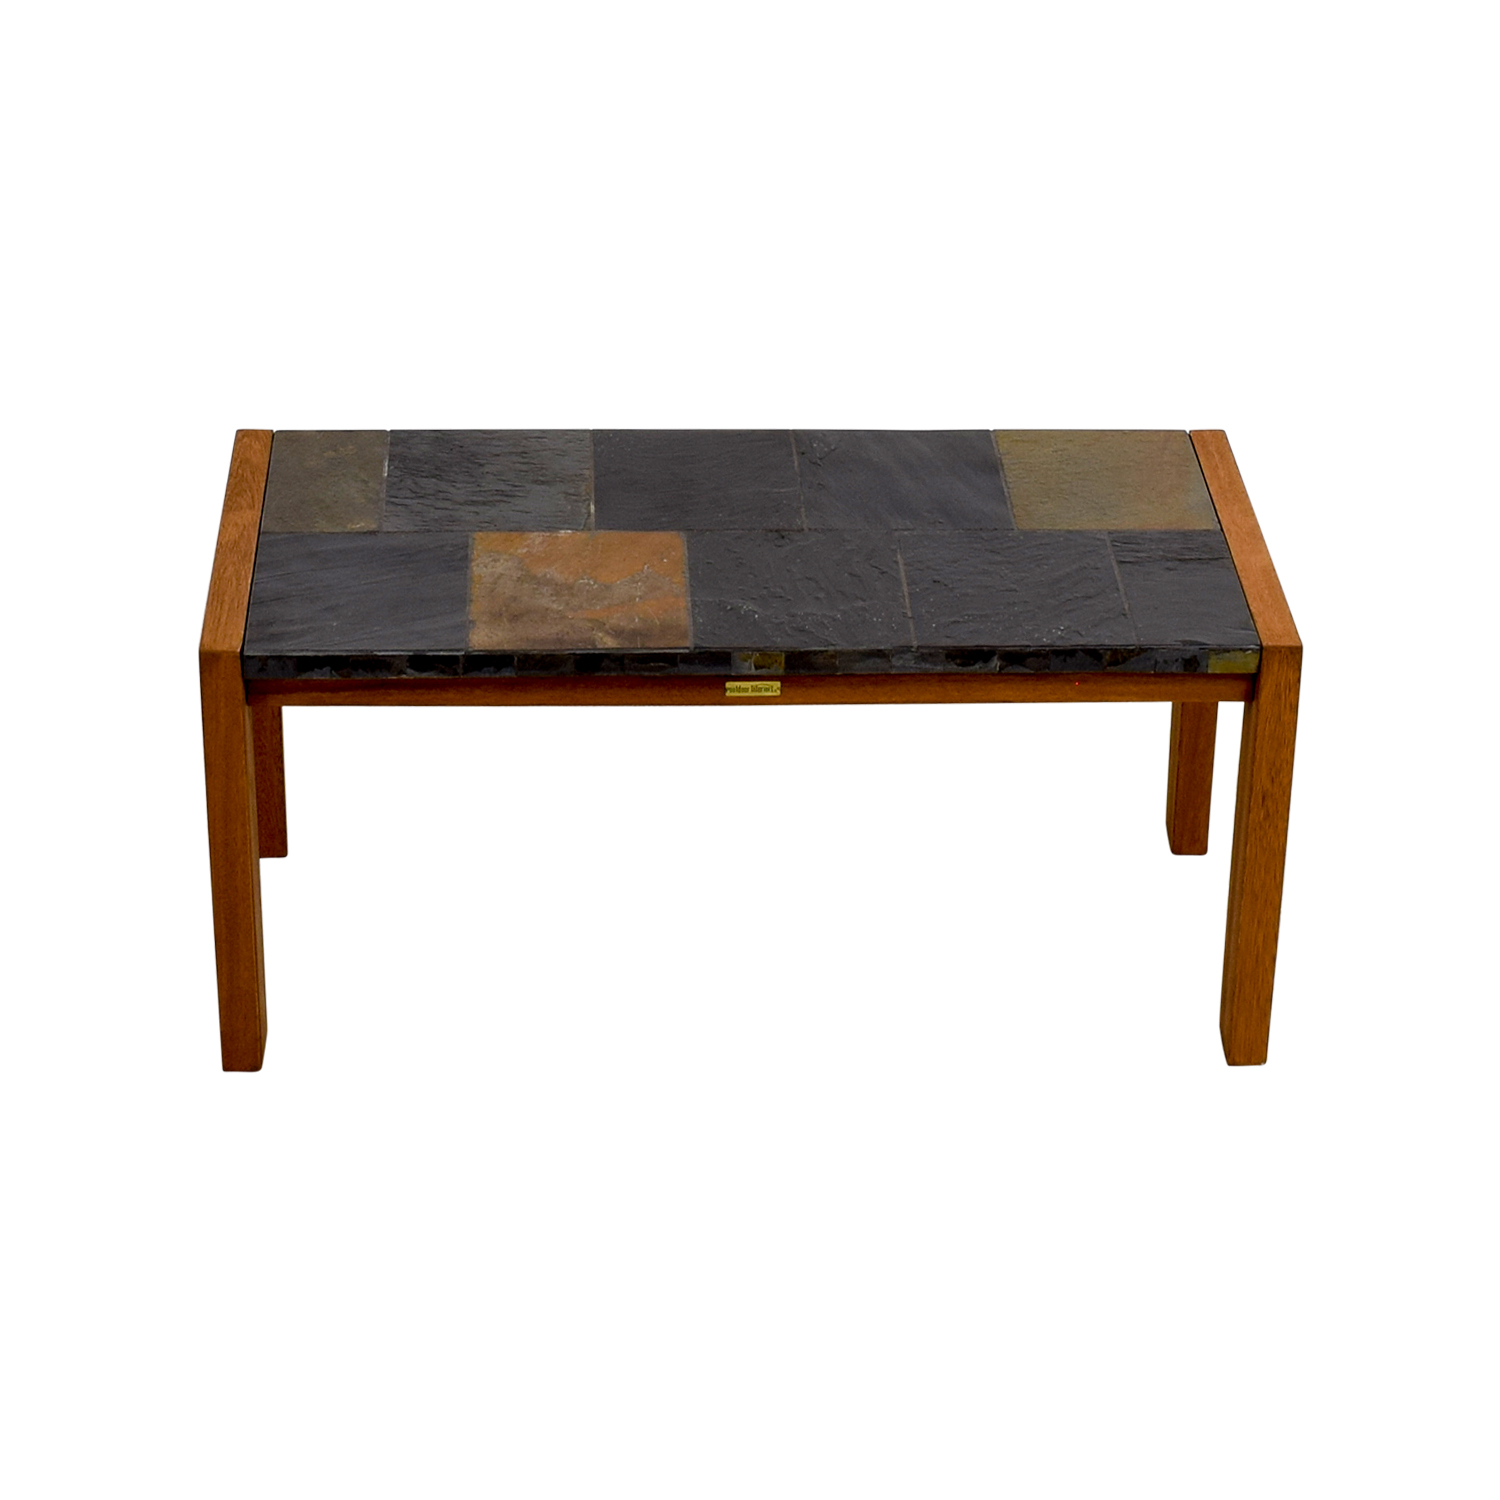 Outdoor Interiors Outdoor Interiors Slate Mosaic Coffee Table nyc